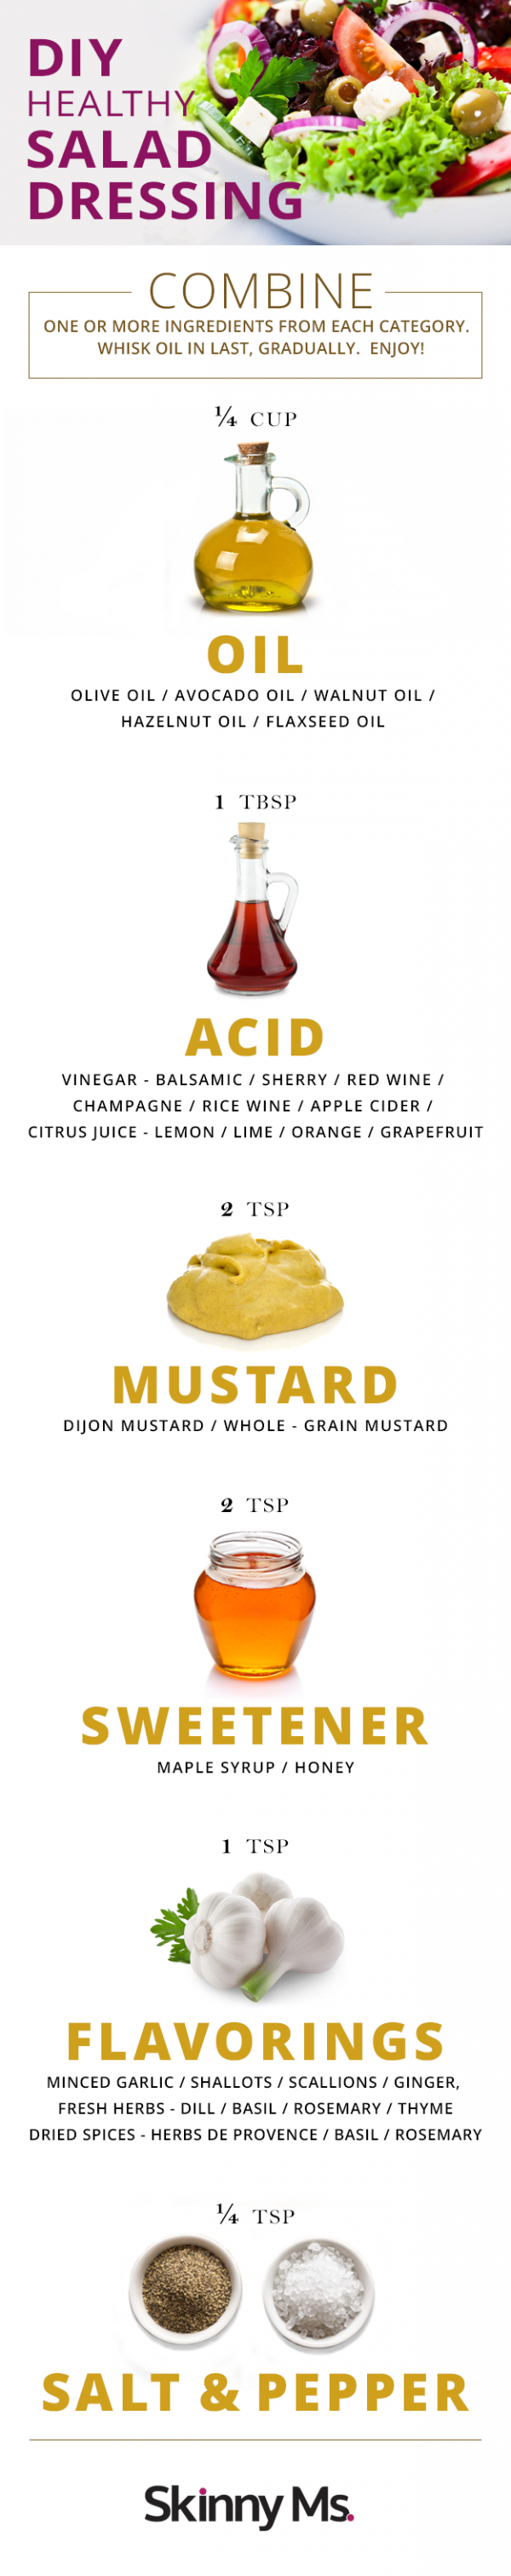 DIY-Healthy-Salad-Dressing-1-600x3024.png